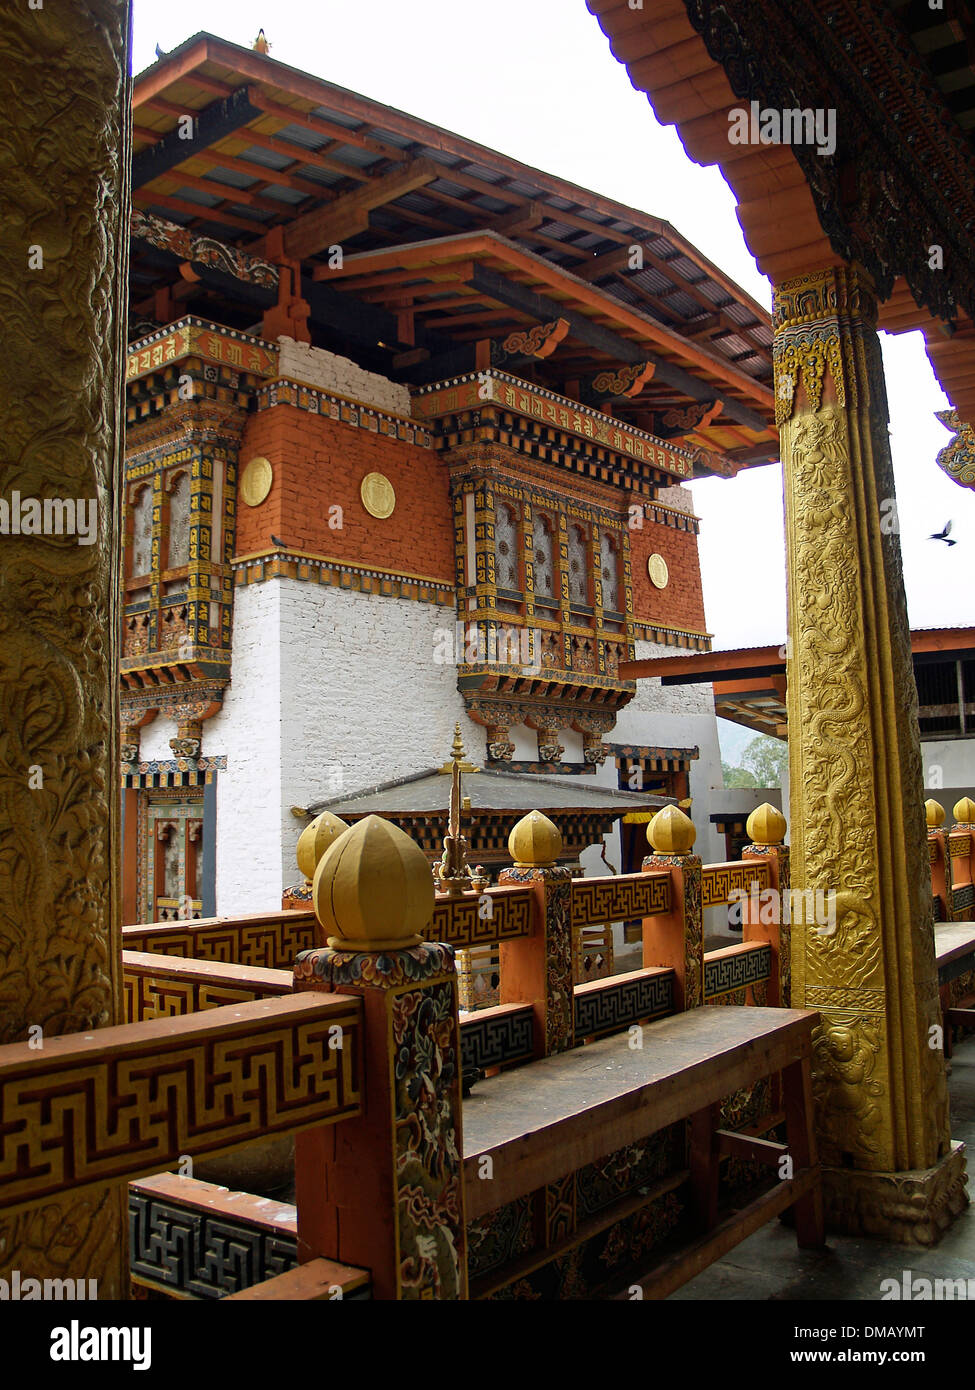 he interior courtyard of the Punakha Dzong,Bhutan - Stock Image